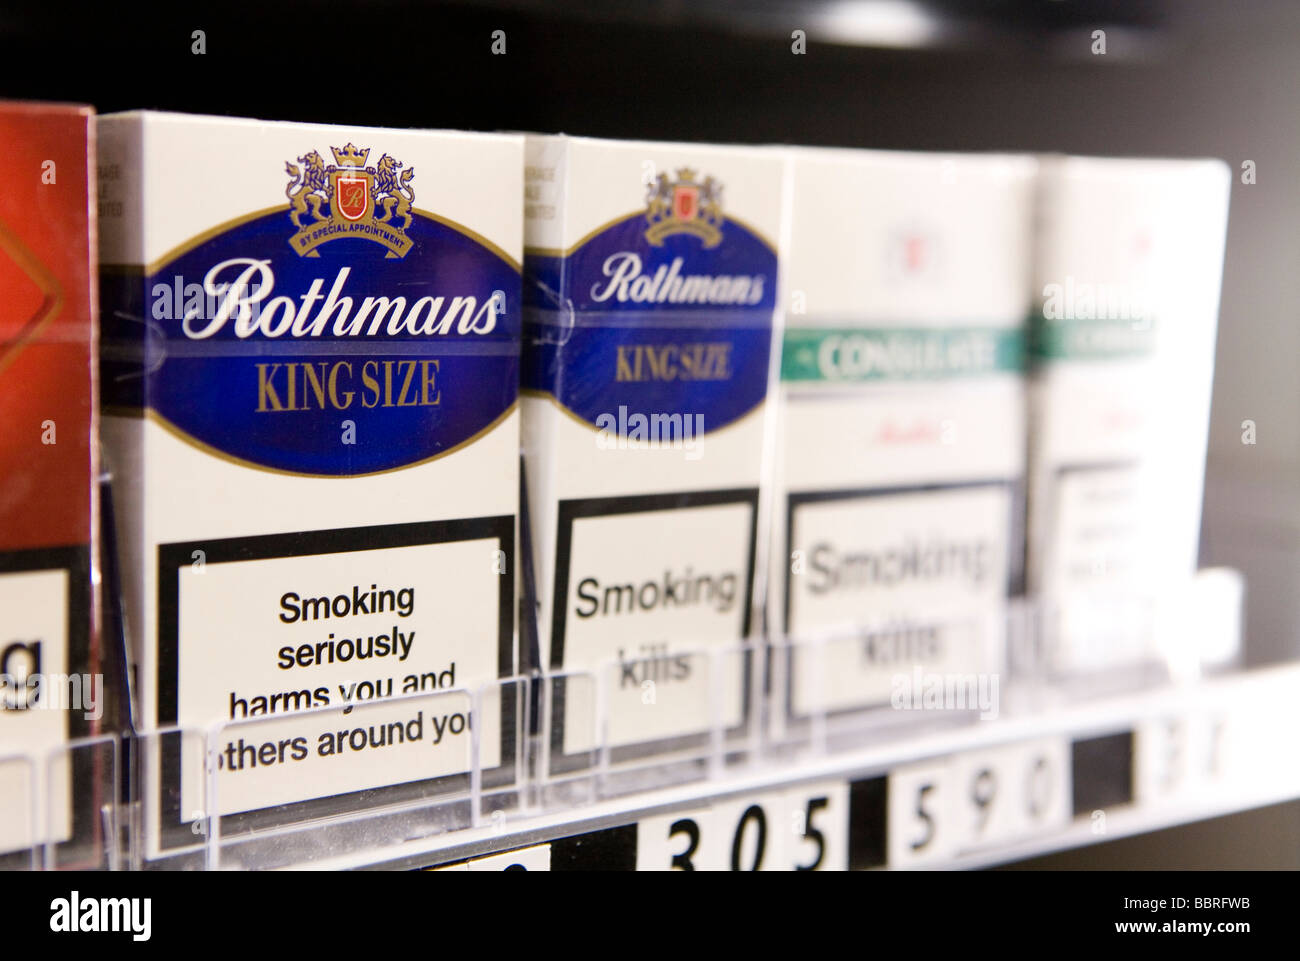 Cost of Bond cigarettes in Missouri